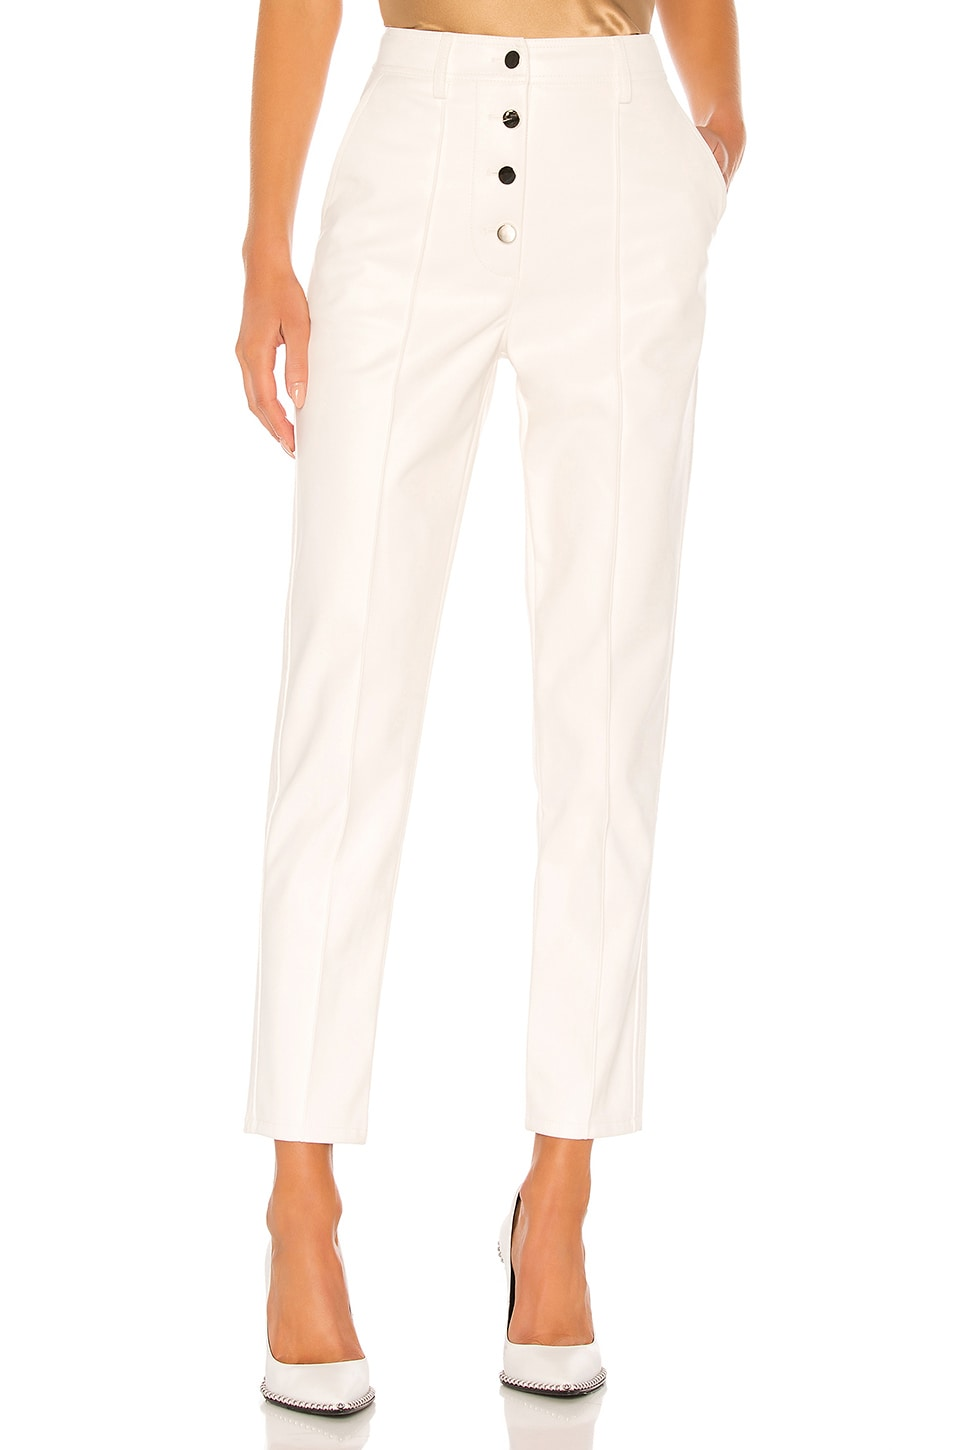 Divine Heritage Vegan Leather High Waisted Pant in White